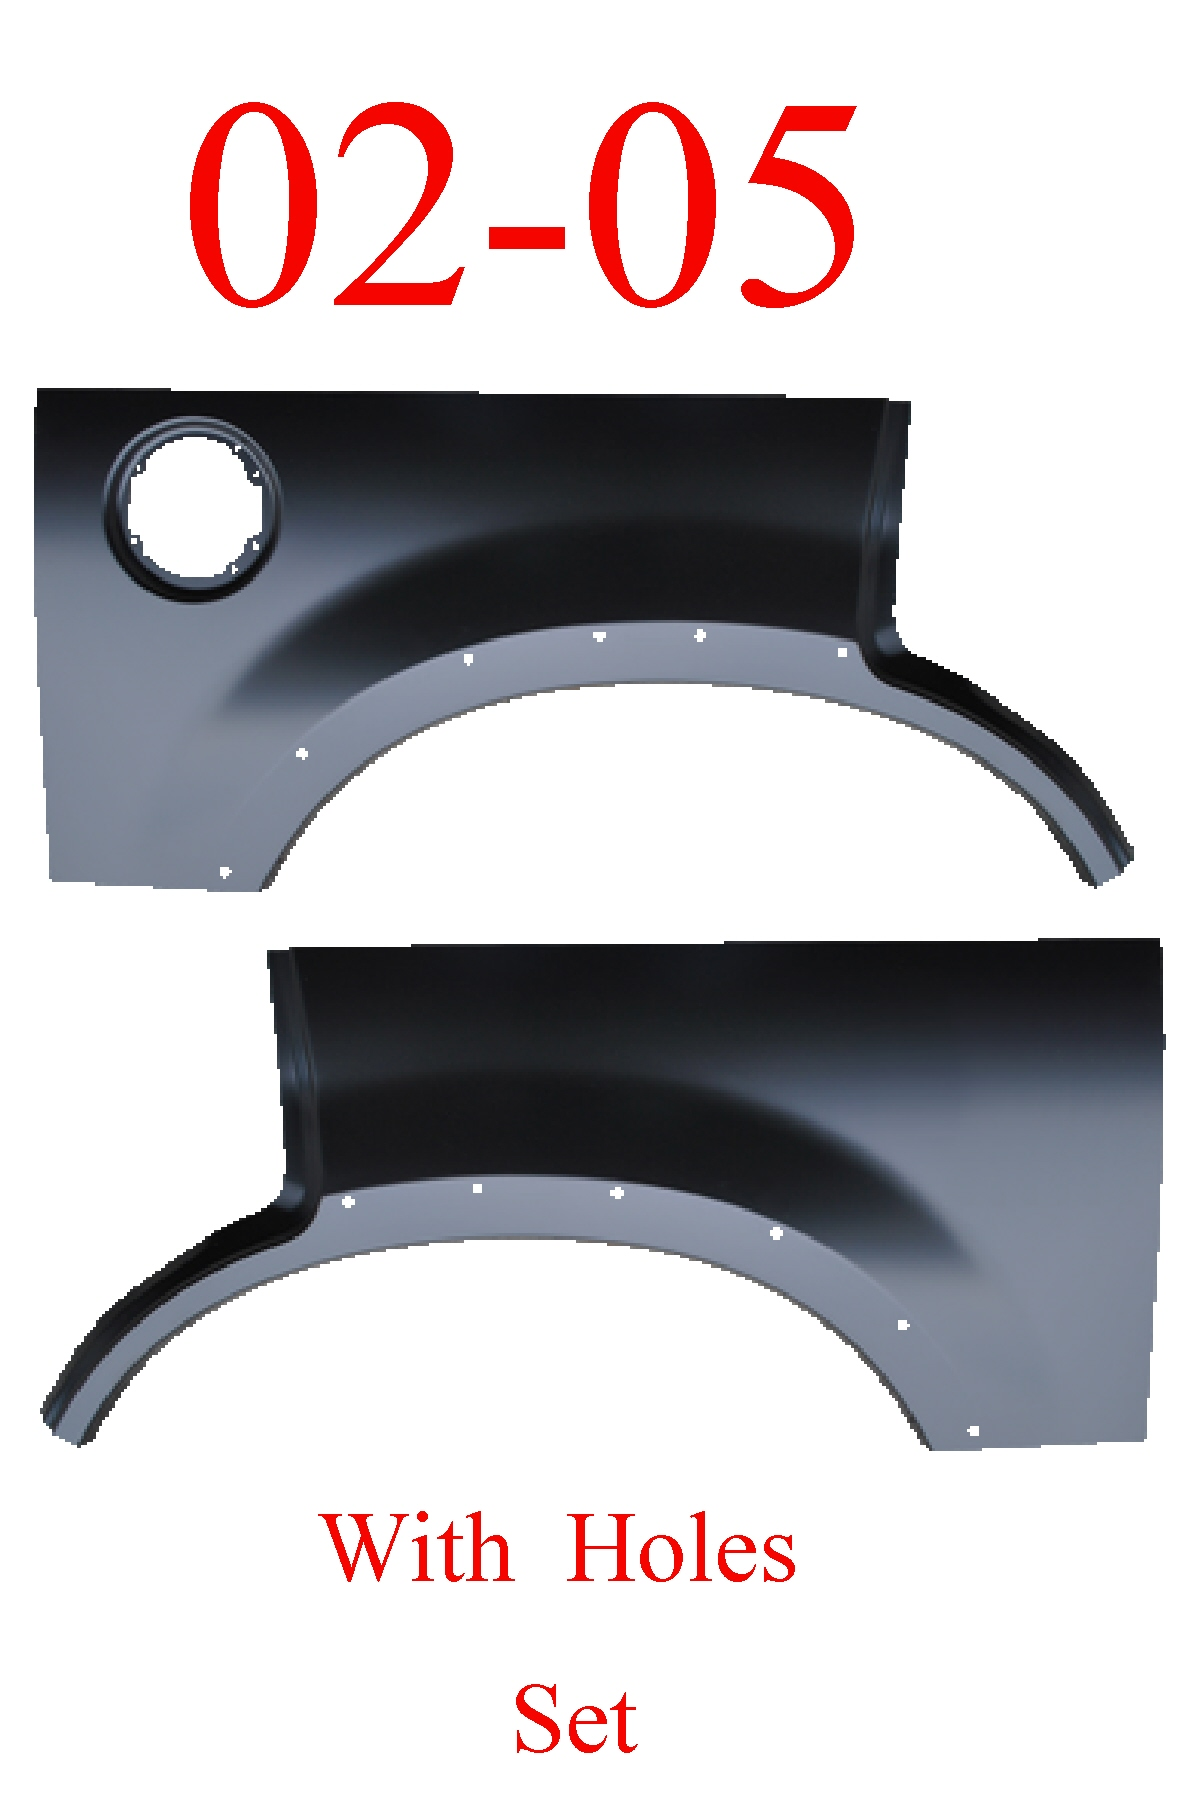 02-05 With Holes, Ford Explorer Upper Arch Set